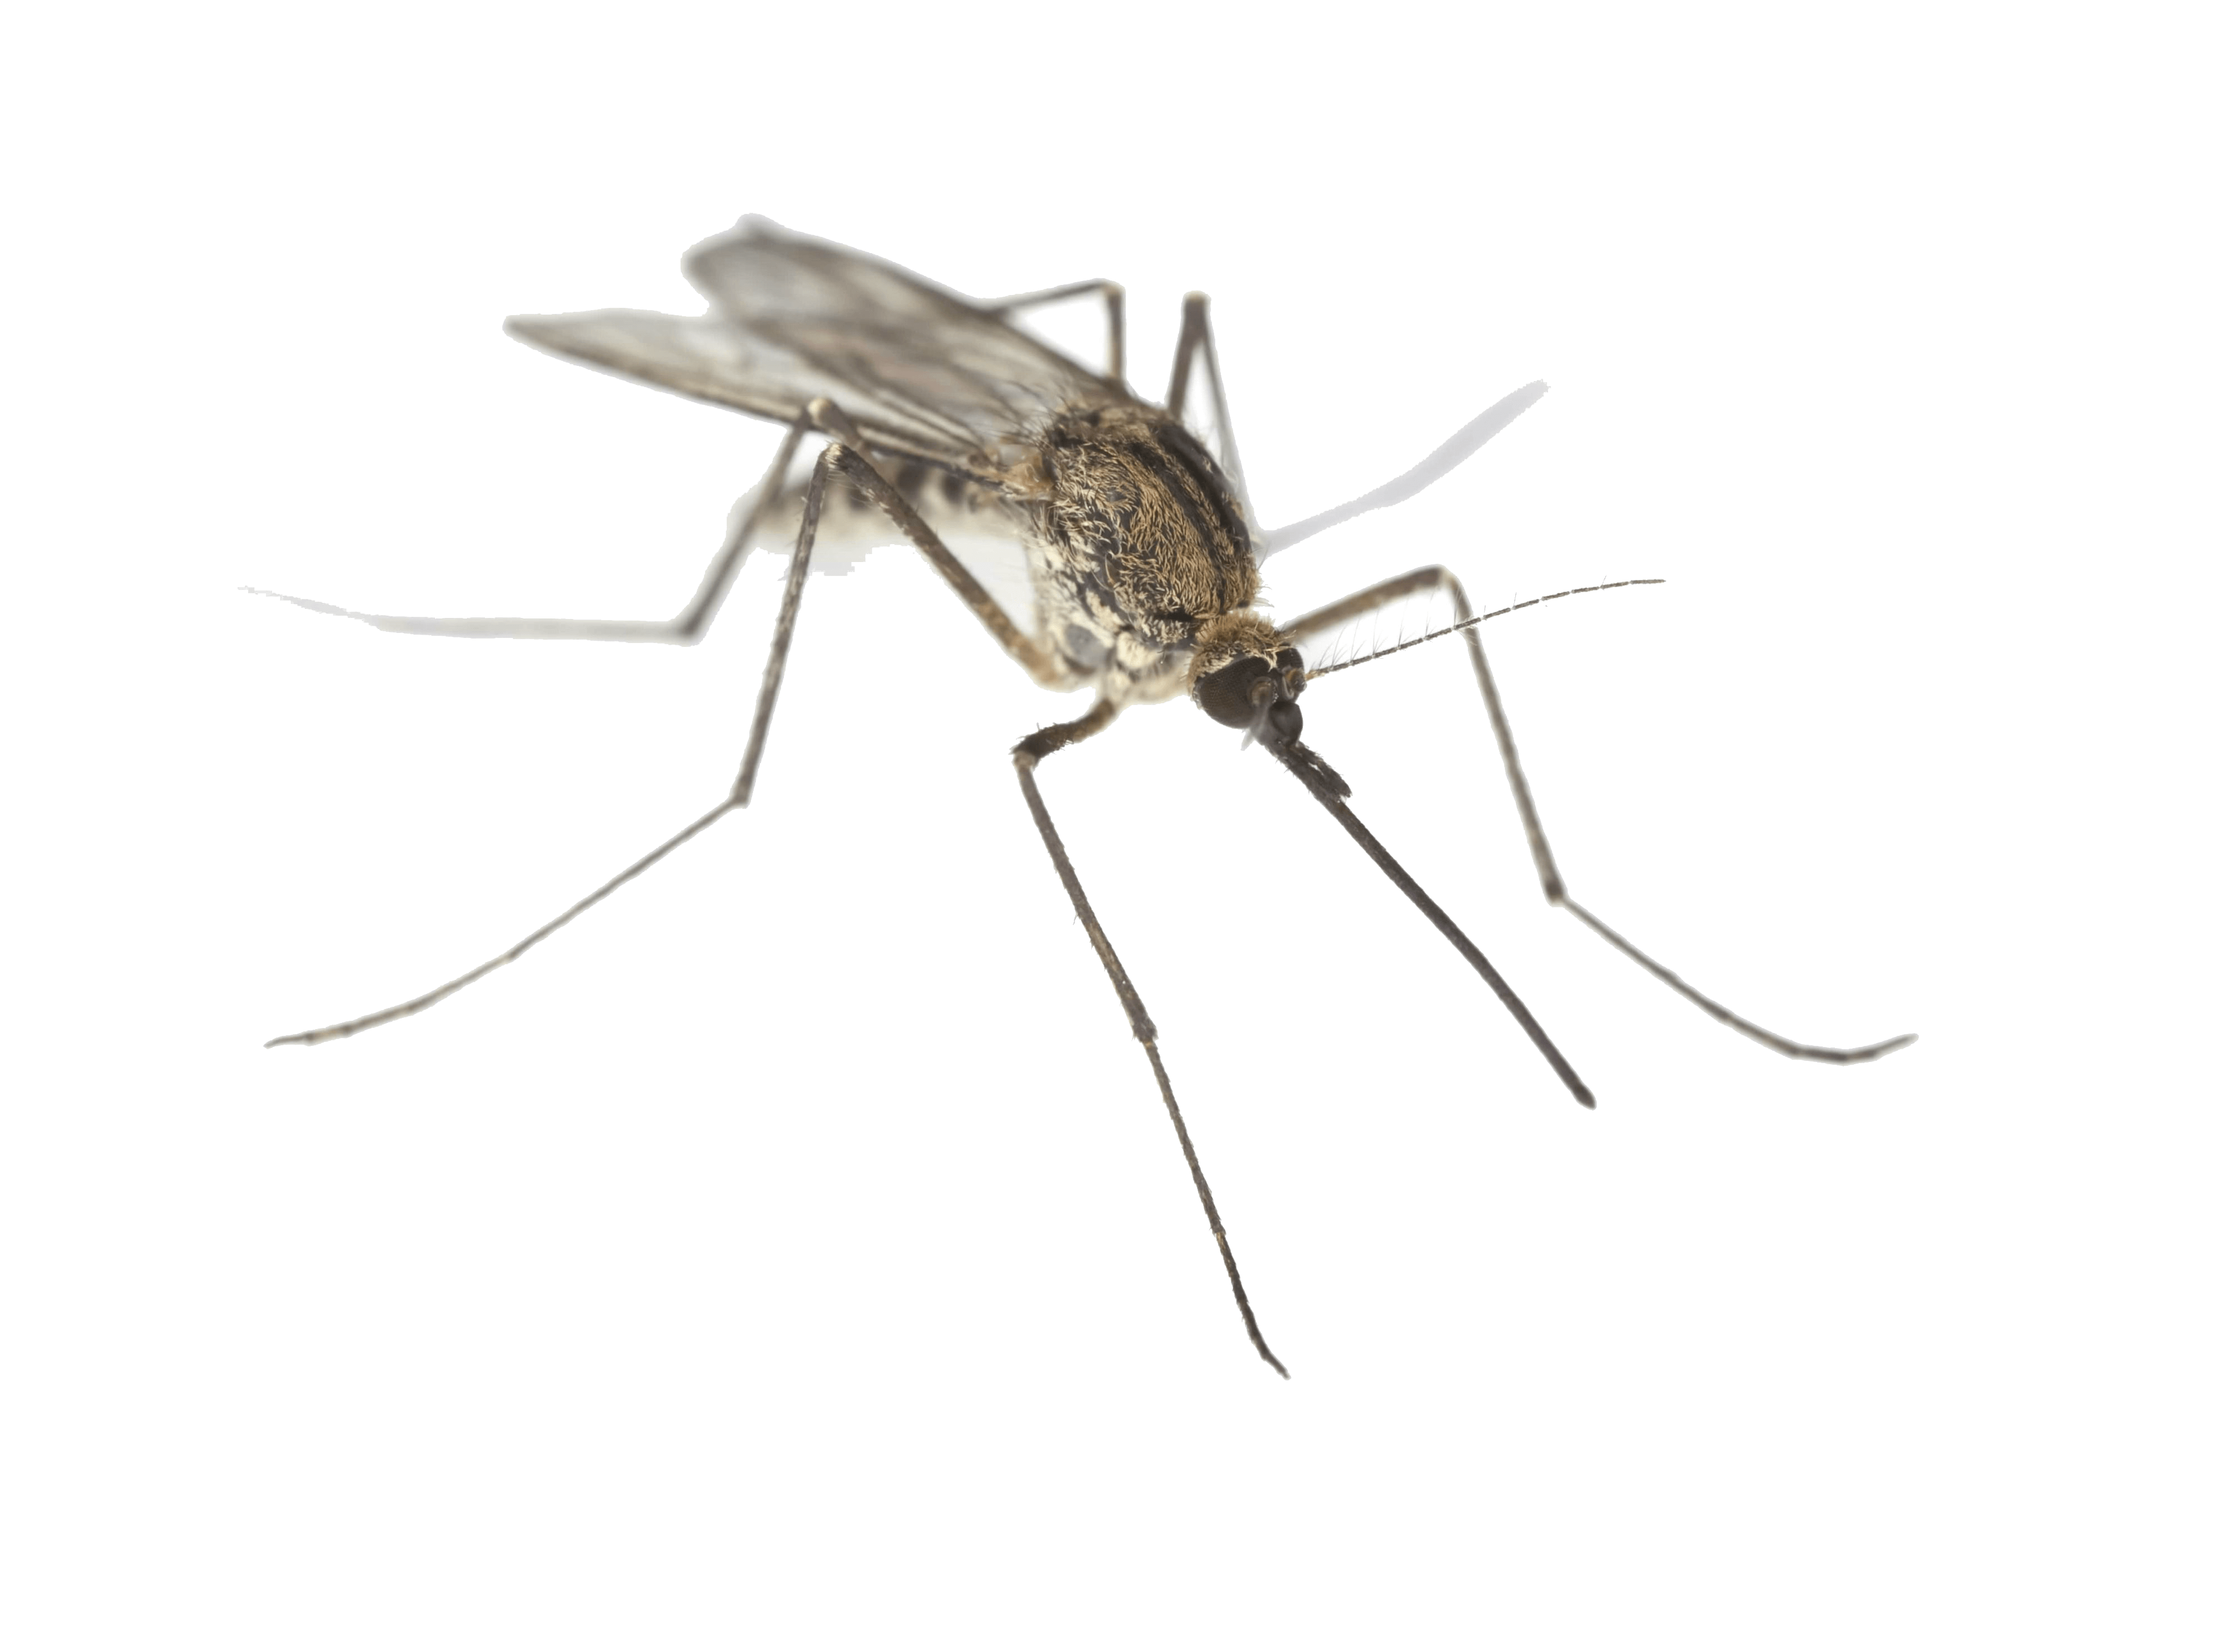 Mosquito png transparent images. Fly clipart mosca